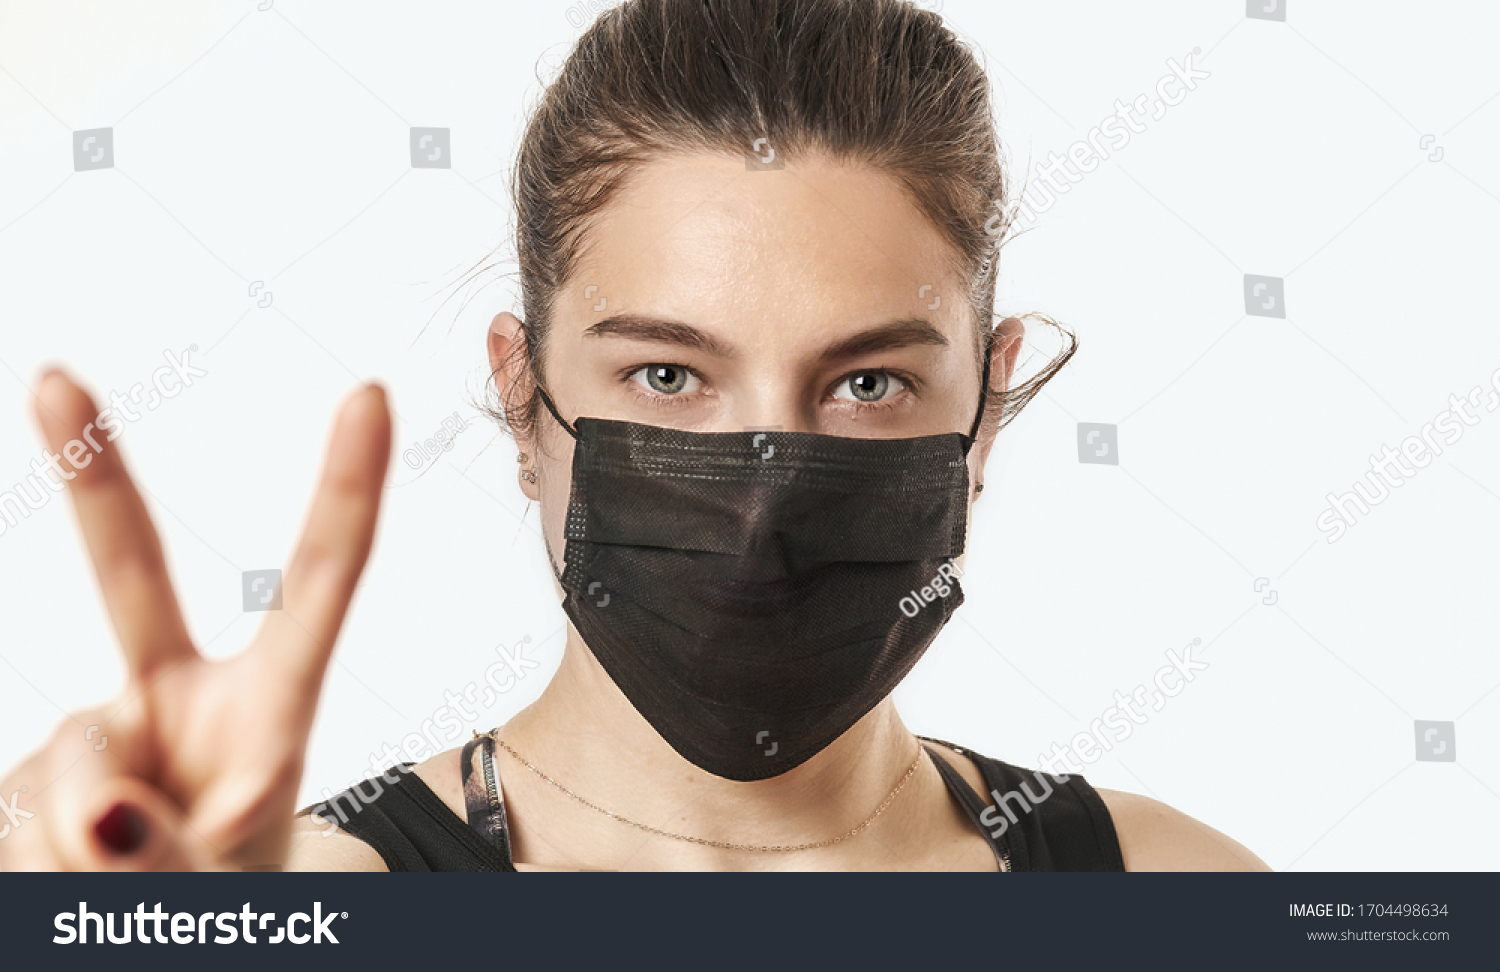 A close-up portrait of a pretty female wearing a surgical mask isolated on a white background #1704498634